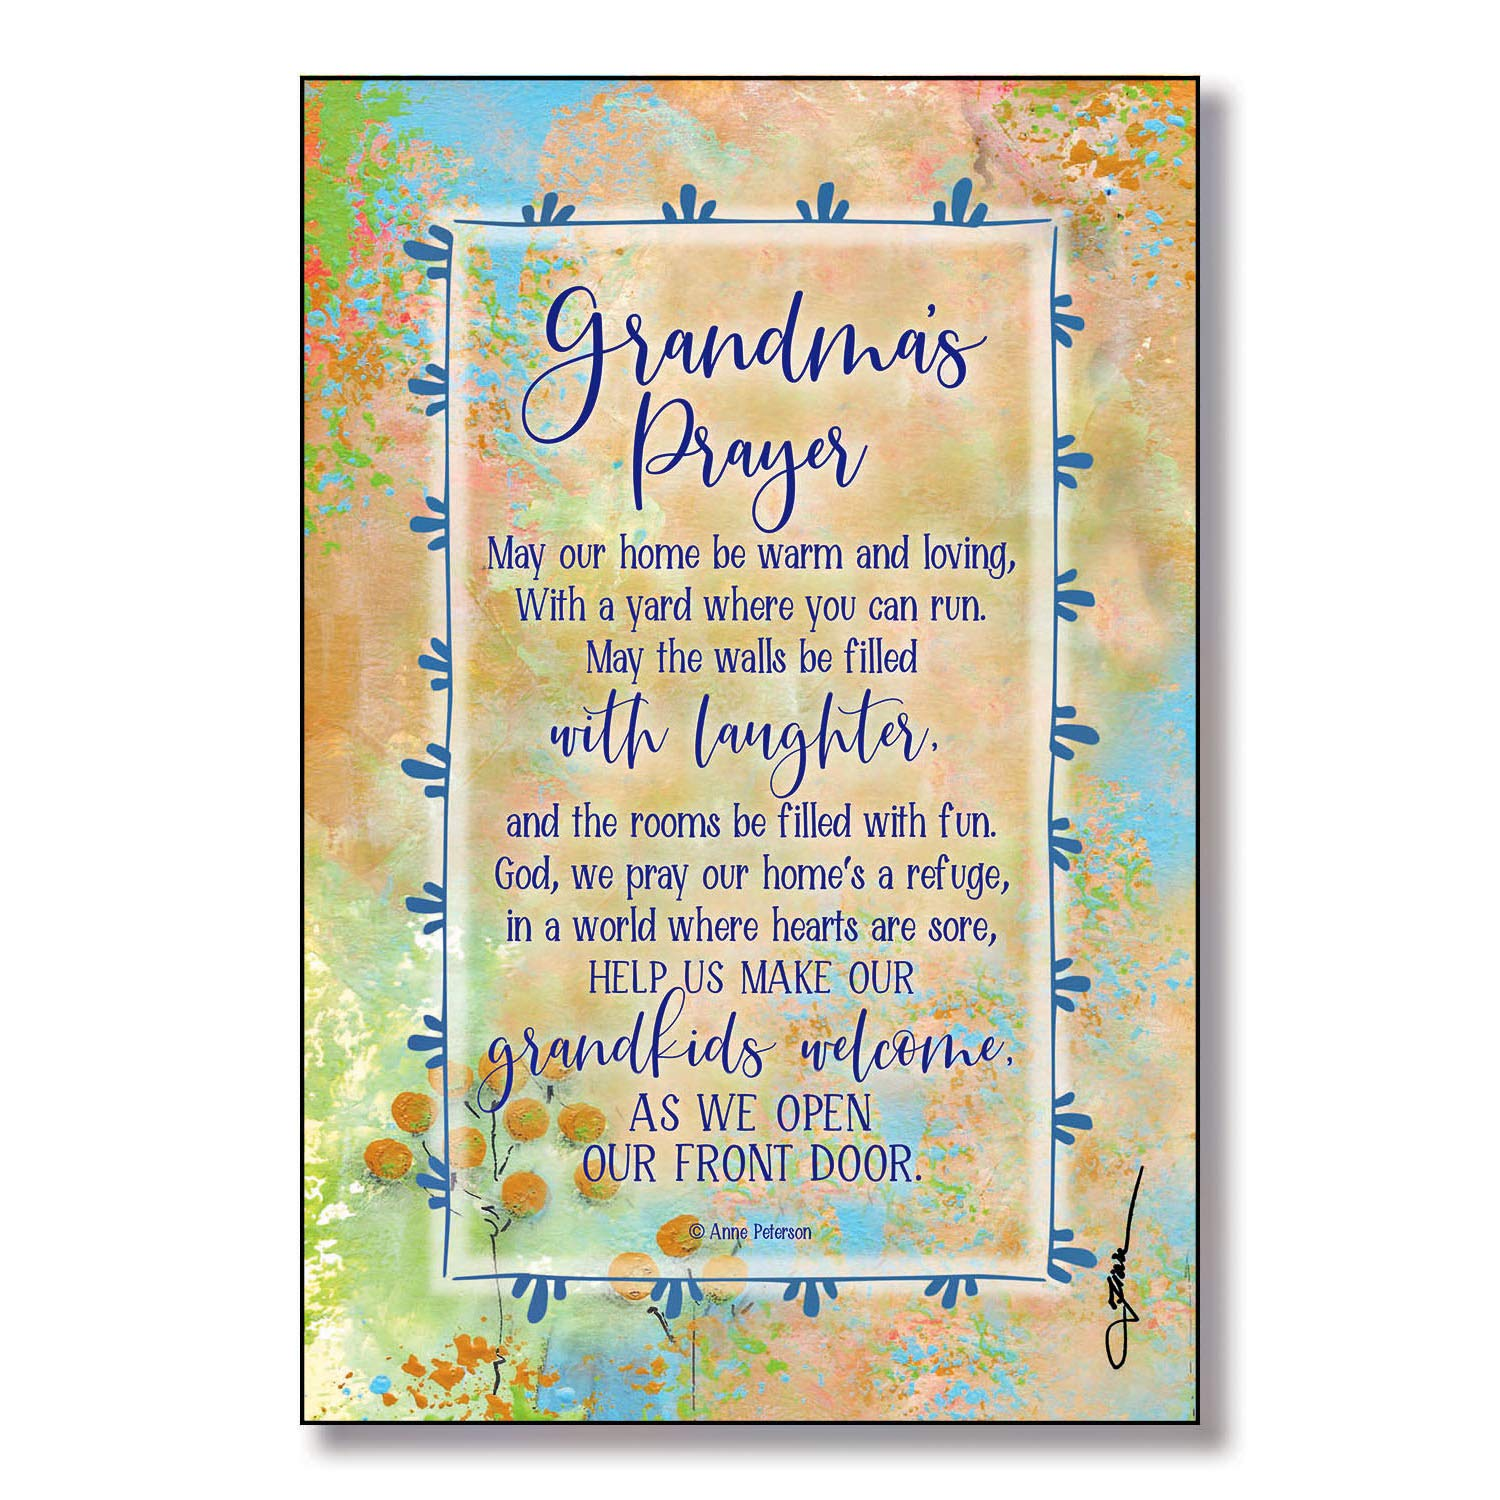 Easel /& Hanging Hook Classic Vertical Frame Wall /& Tabletop Decoration May Our Home be Warm and Loving Grandmas Prayer Wood Plaque with Inspiring Quotes 6x9 with a Yard Where You can Run